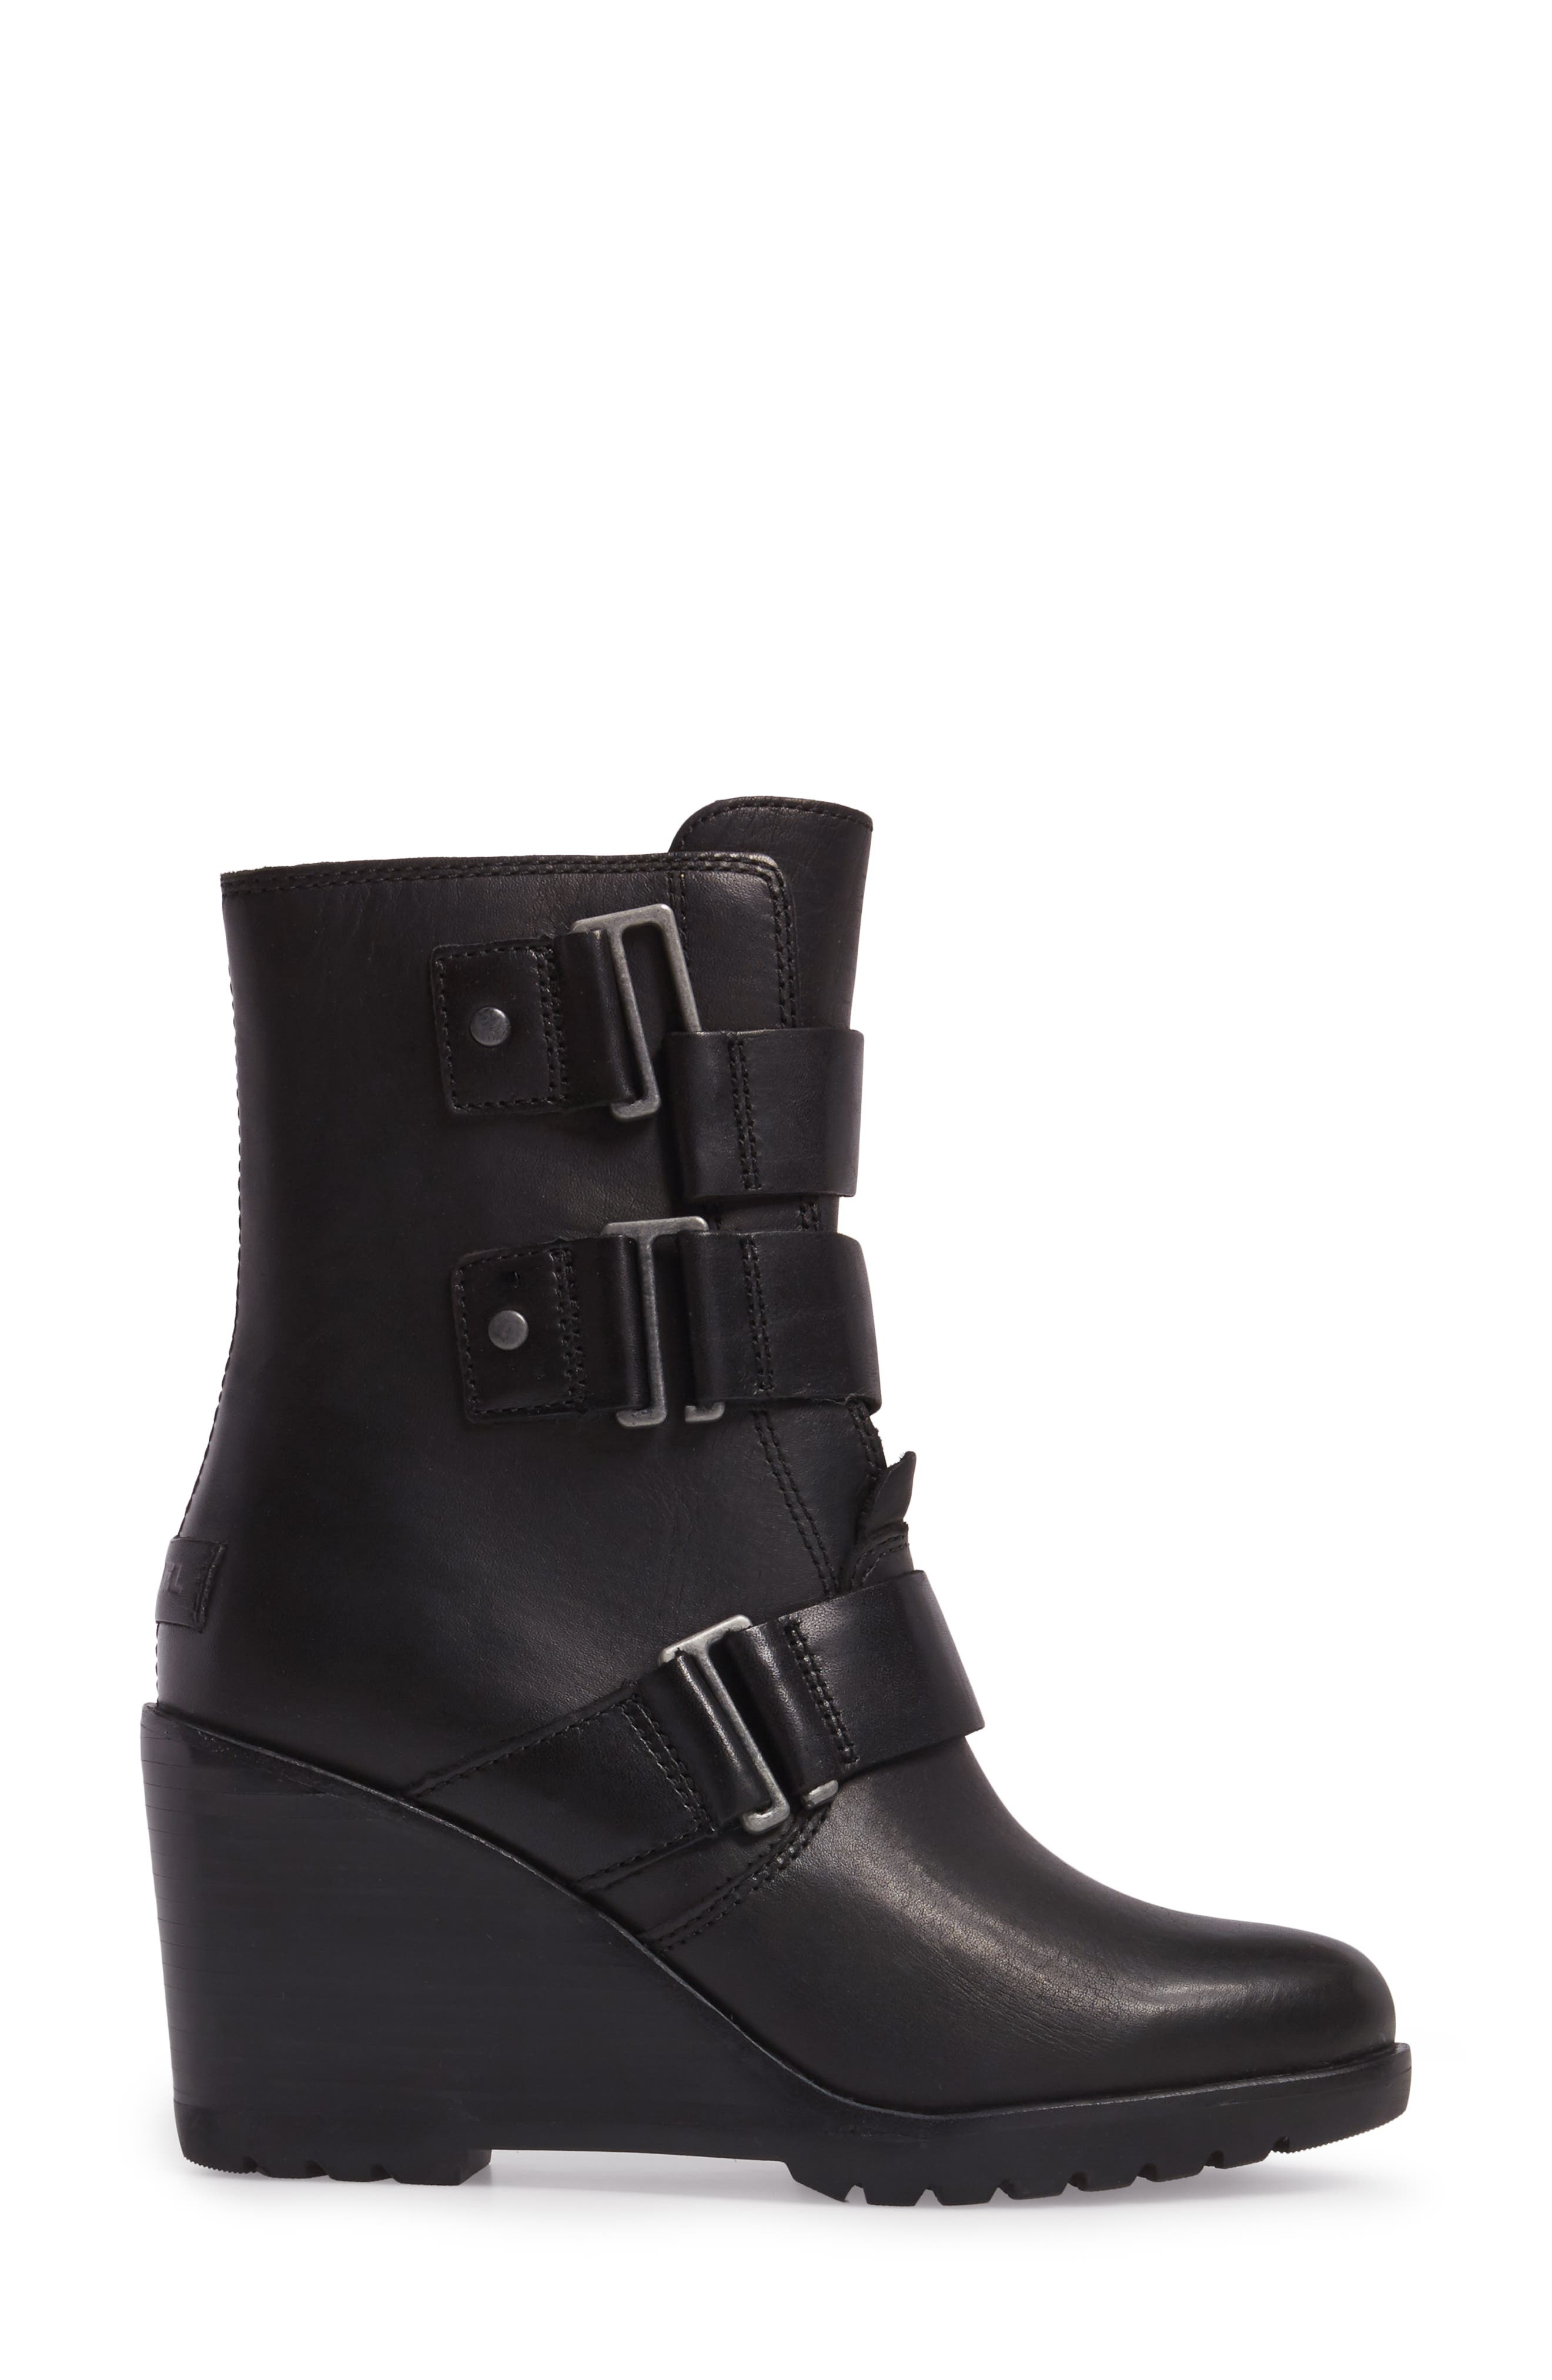 After Hours Waterproof Bootie,                             Alternate thumbnail 7, color,